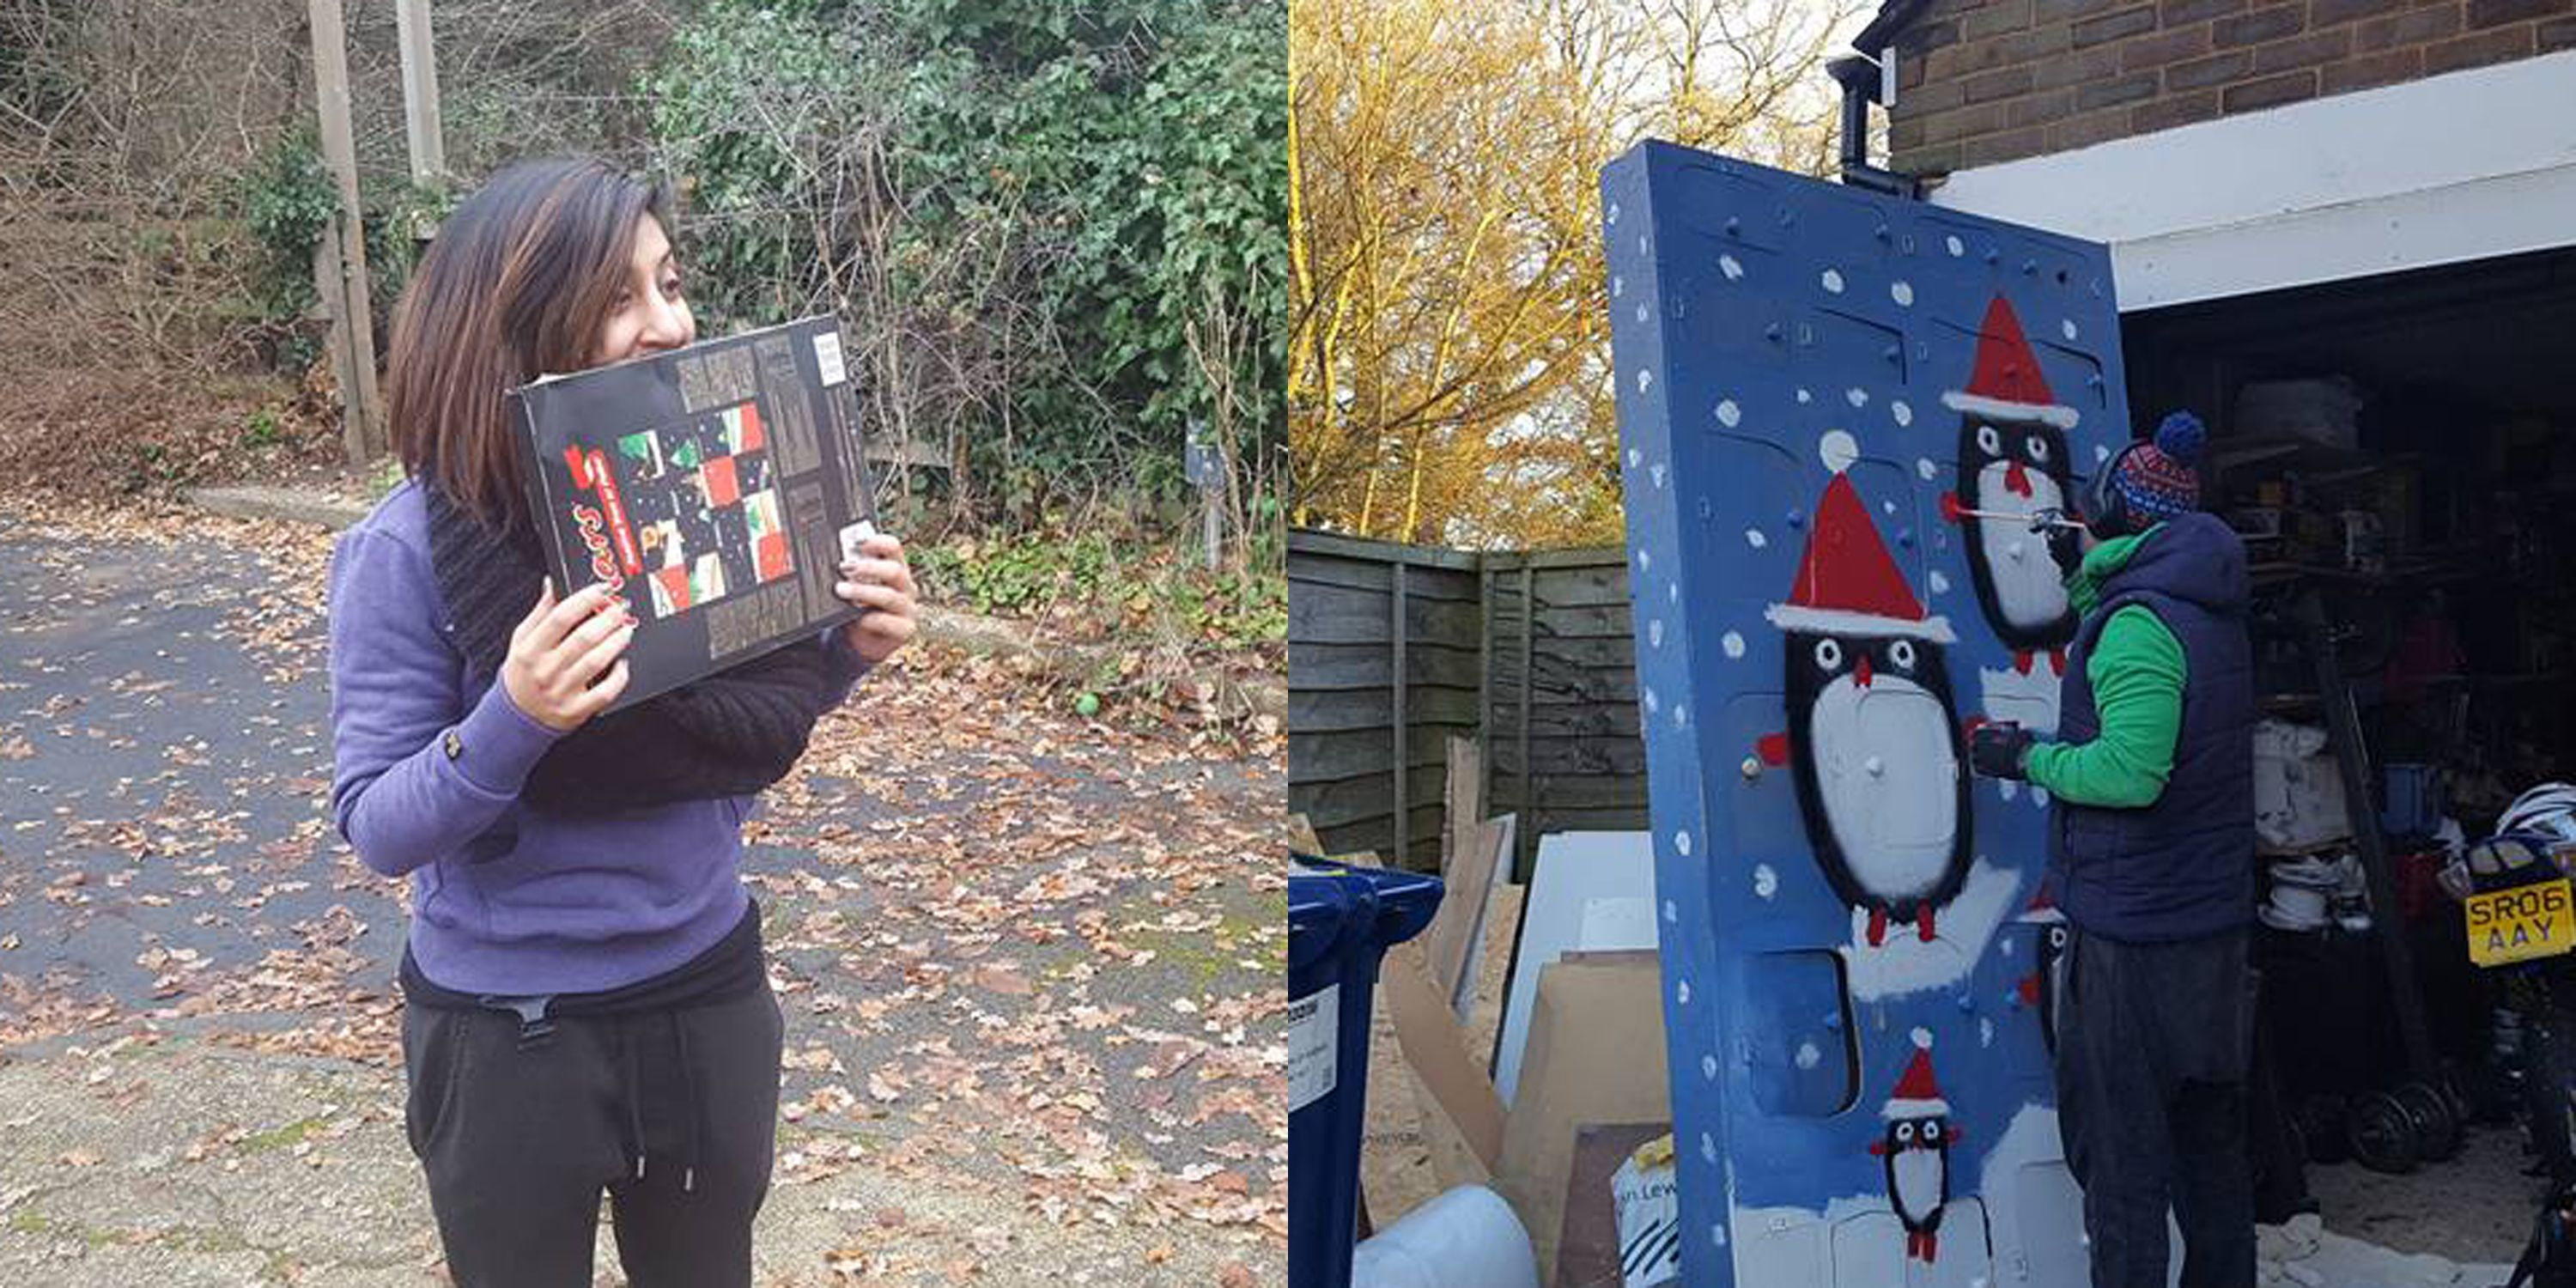 This Sweet Husband Built a 7-Foot-Tall Advent Calendar and Filled It With Gifts for His Wife